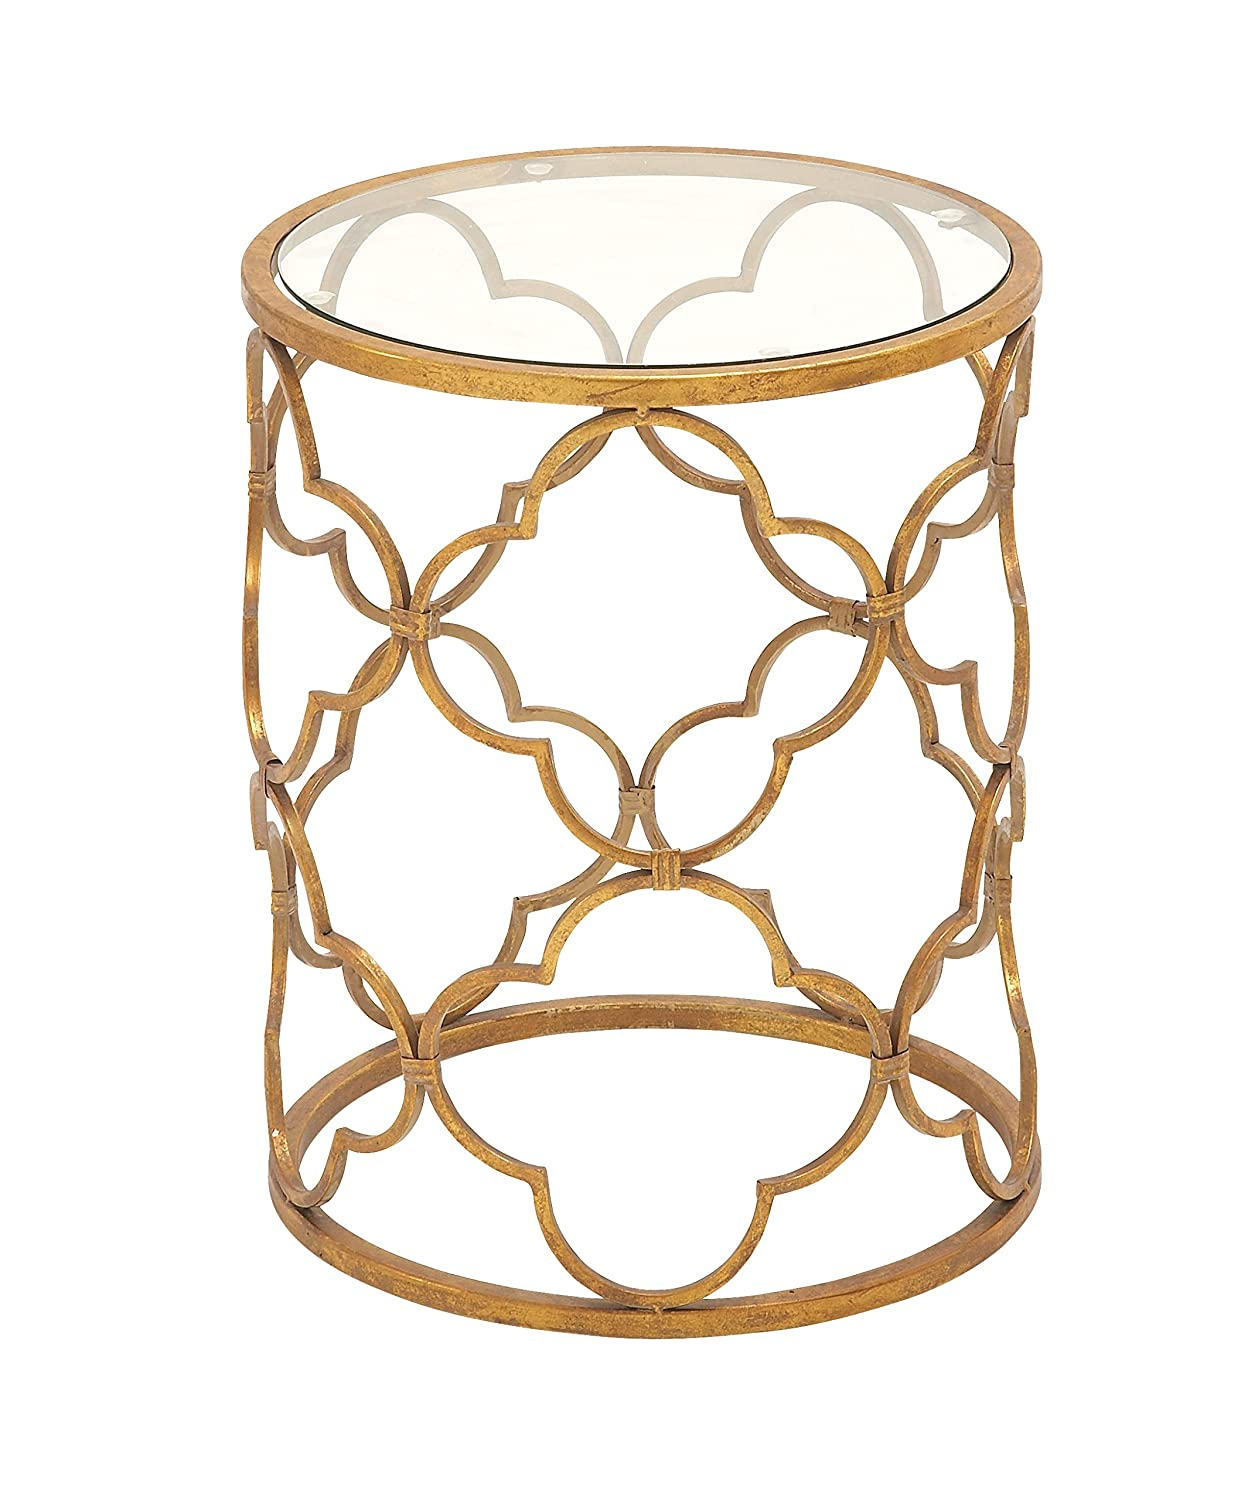 "Deco 79 67056 Metal Glass Accent Table, 16"" x 20"", Gold"